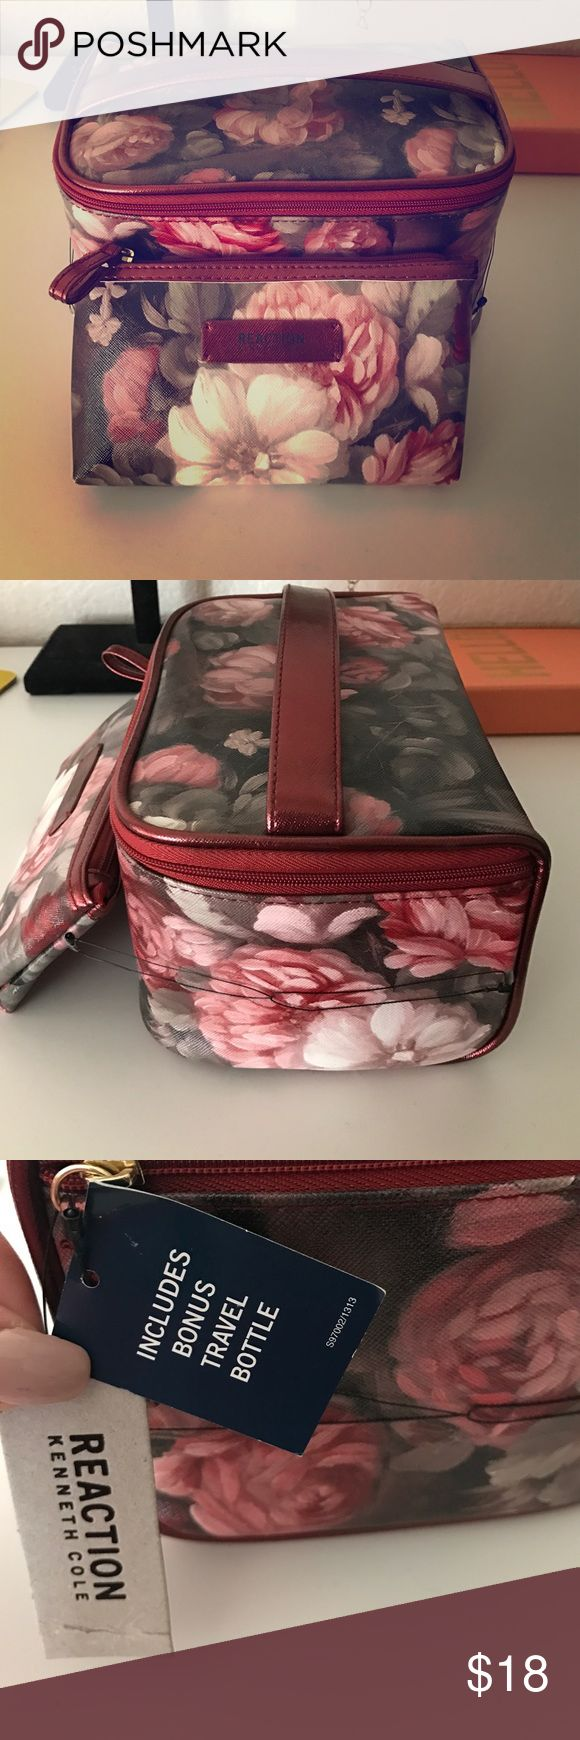 Kenneth Cole Reaction makeup case Kenneth Cole reaction train set/ makeup carrying case. Red handle and zipper with floral design around both cases. NWT Kenneth Cole Reaction Bags Cosmetic Bags & Cases